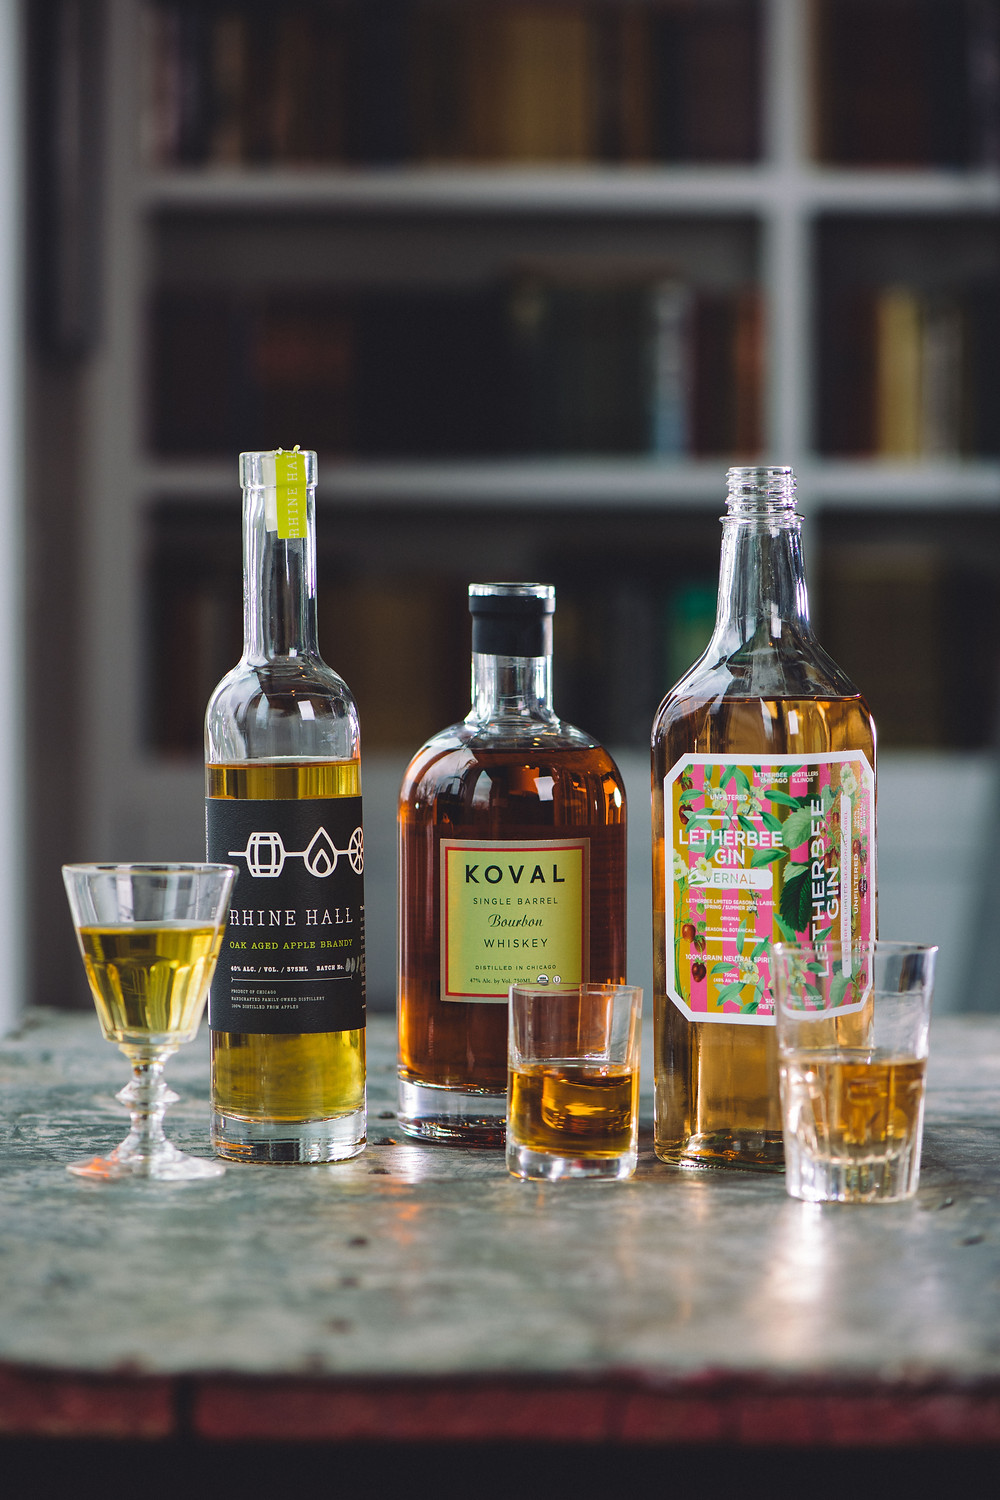 A collection of liquors and spirits to stock your liquor cabinet with